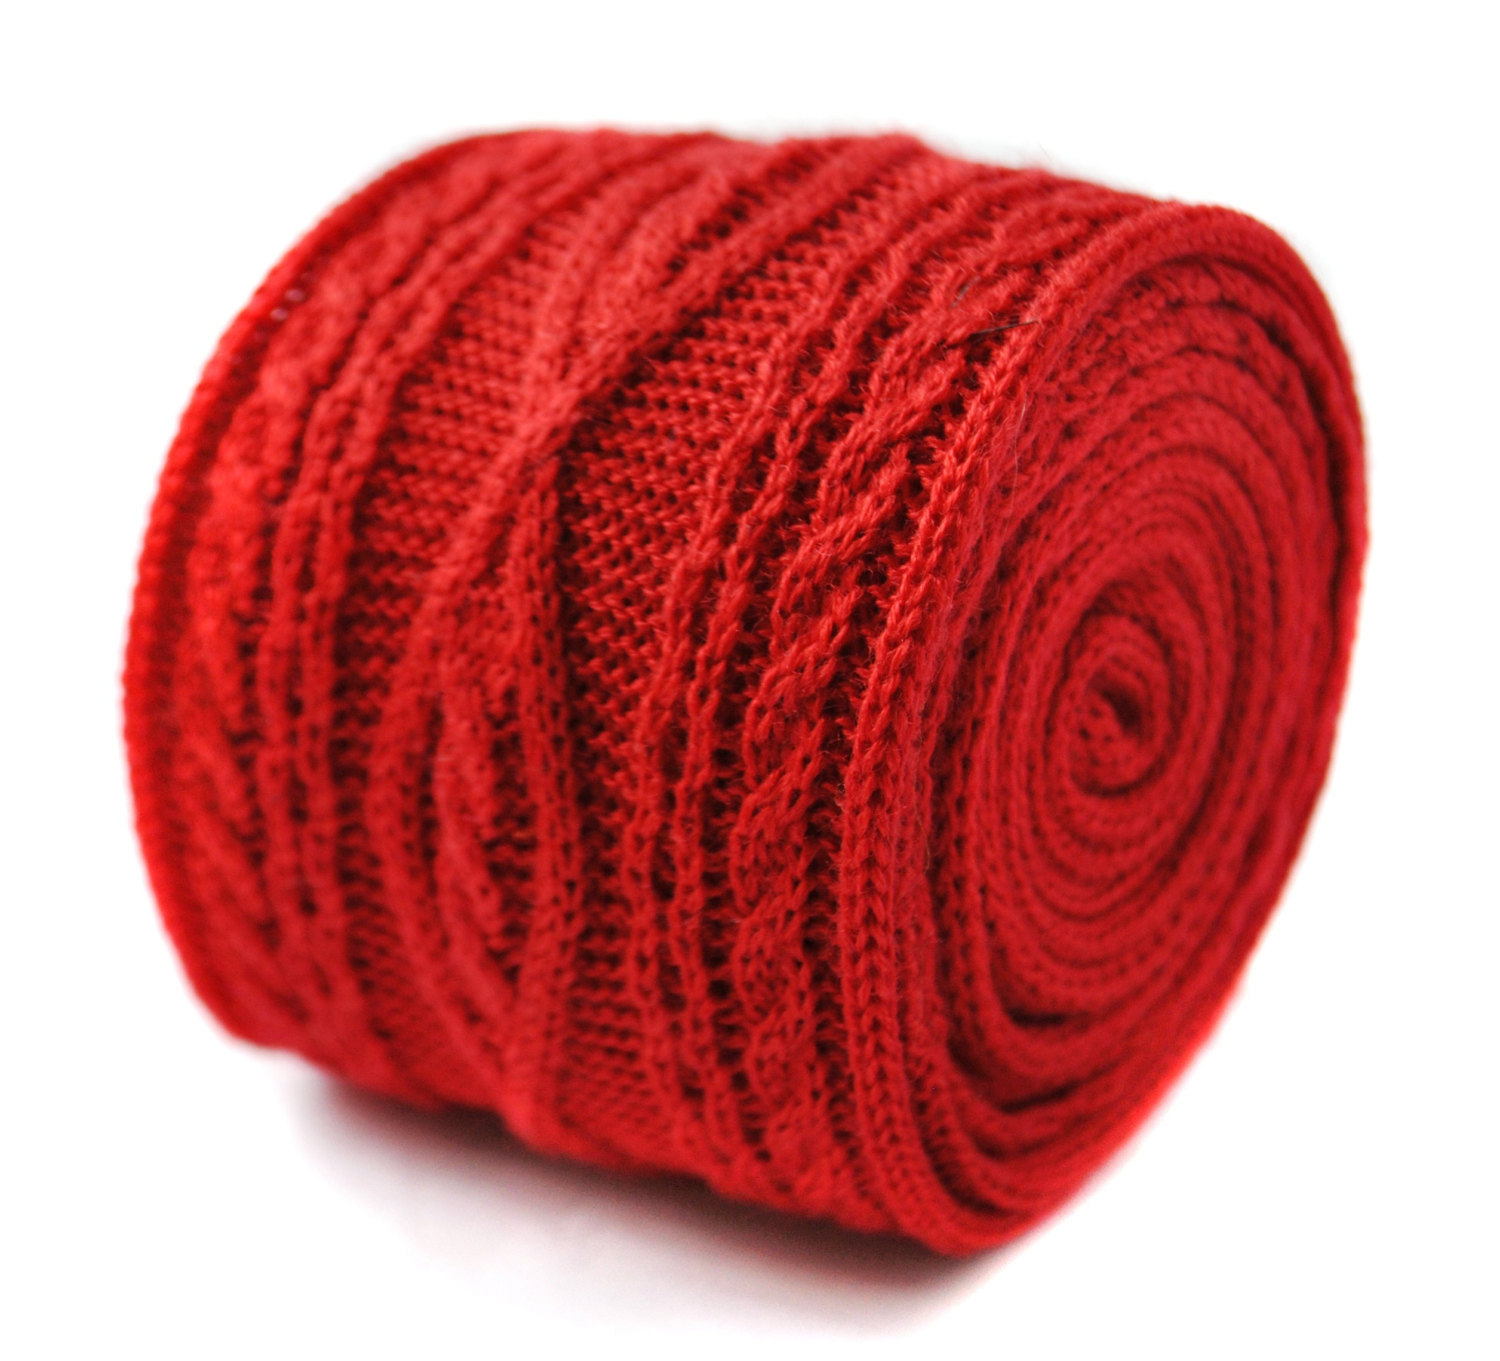 plain red knitted tie with cable knit design by Frederick Thomas FT2010